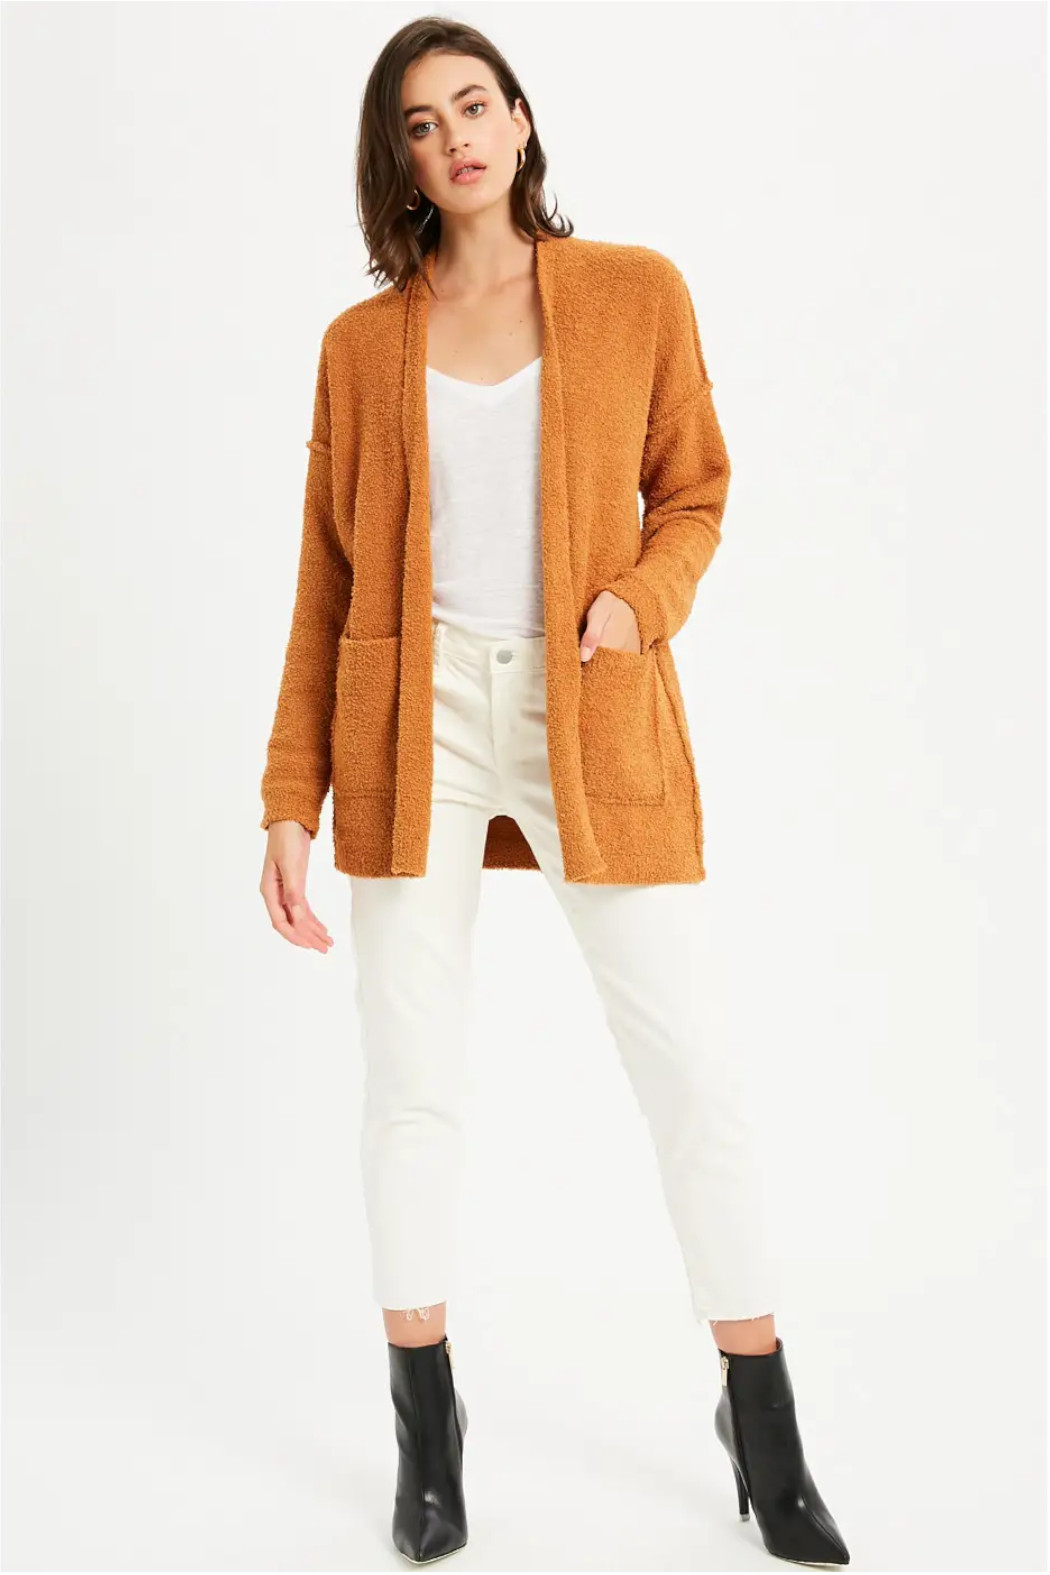 Bluivy Camel Soft Cardigan - Main Image